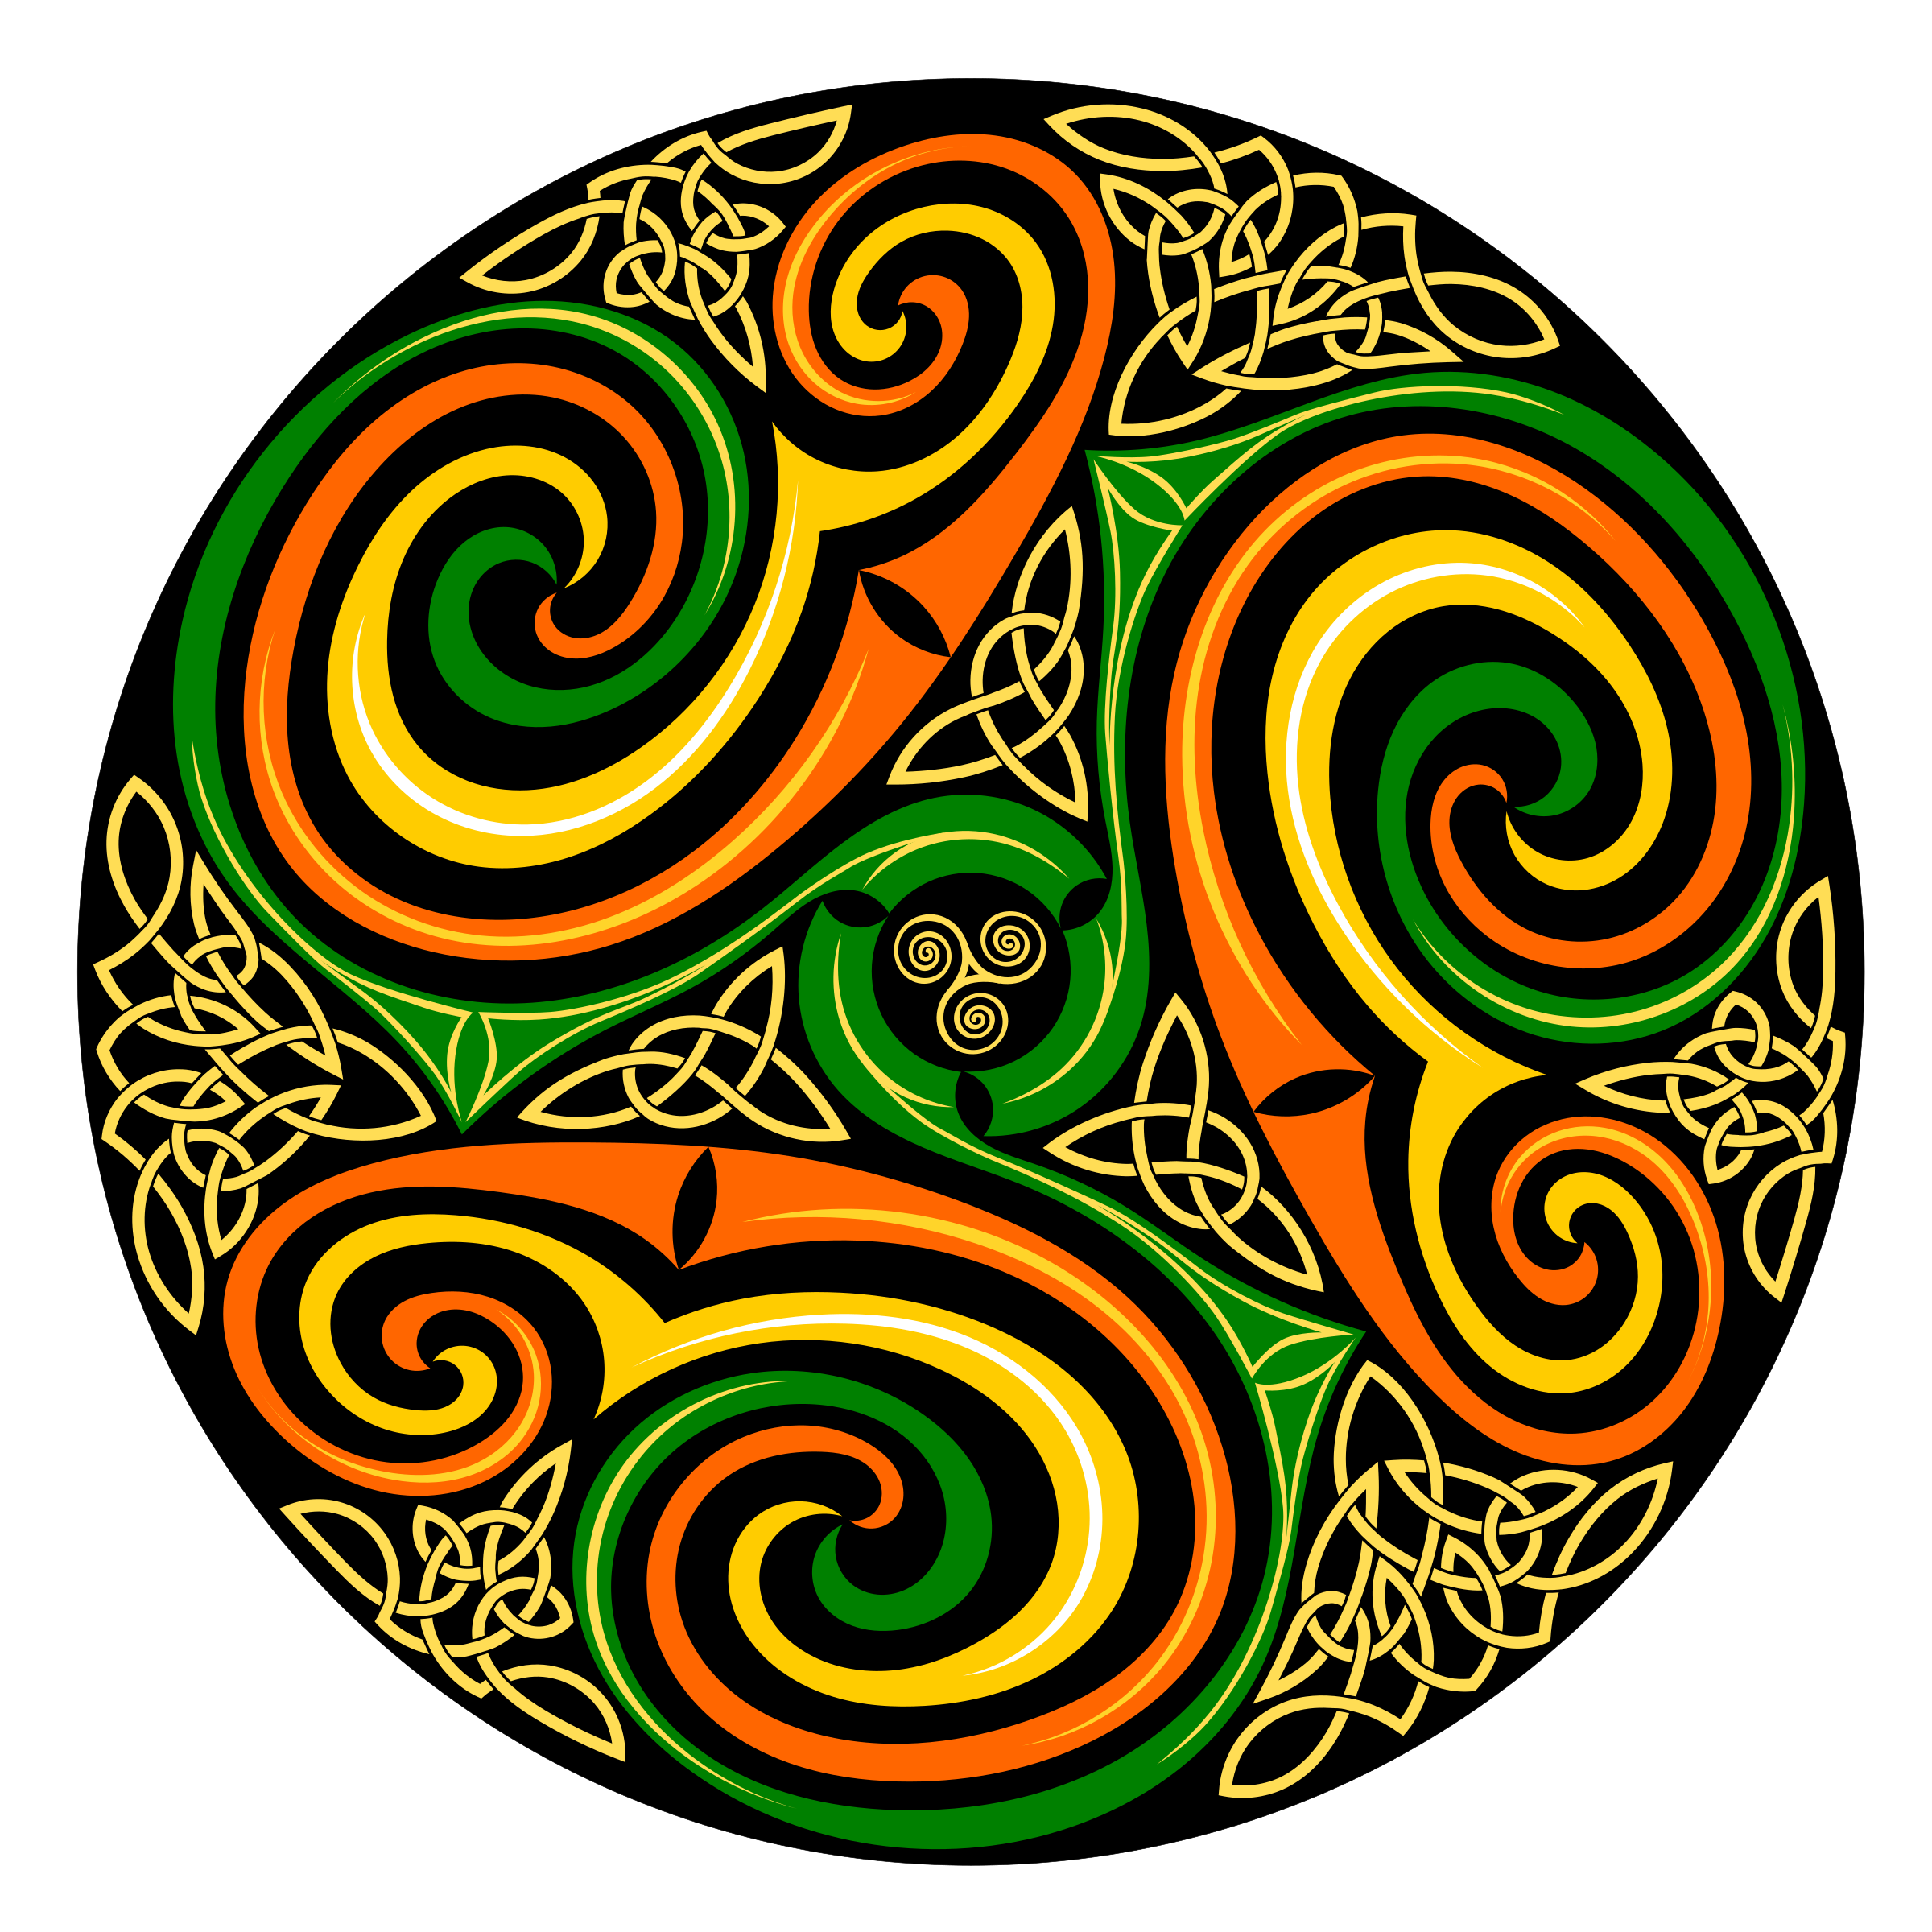 Celtic Spiral by bktheman